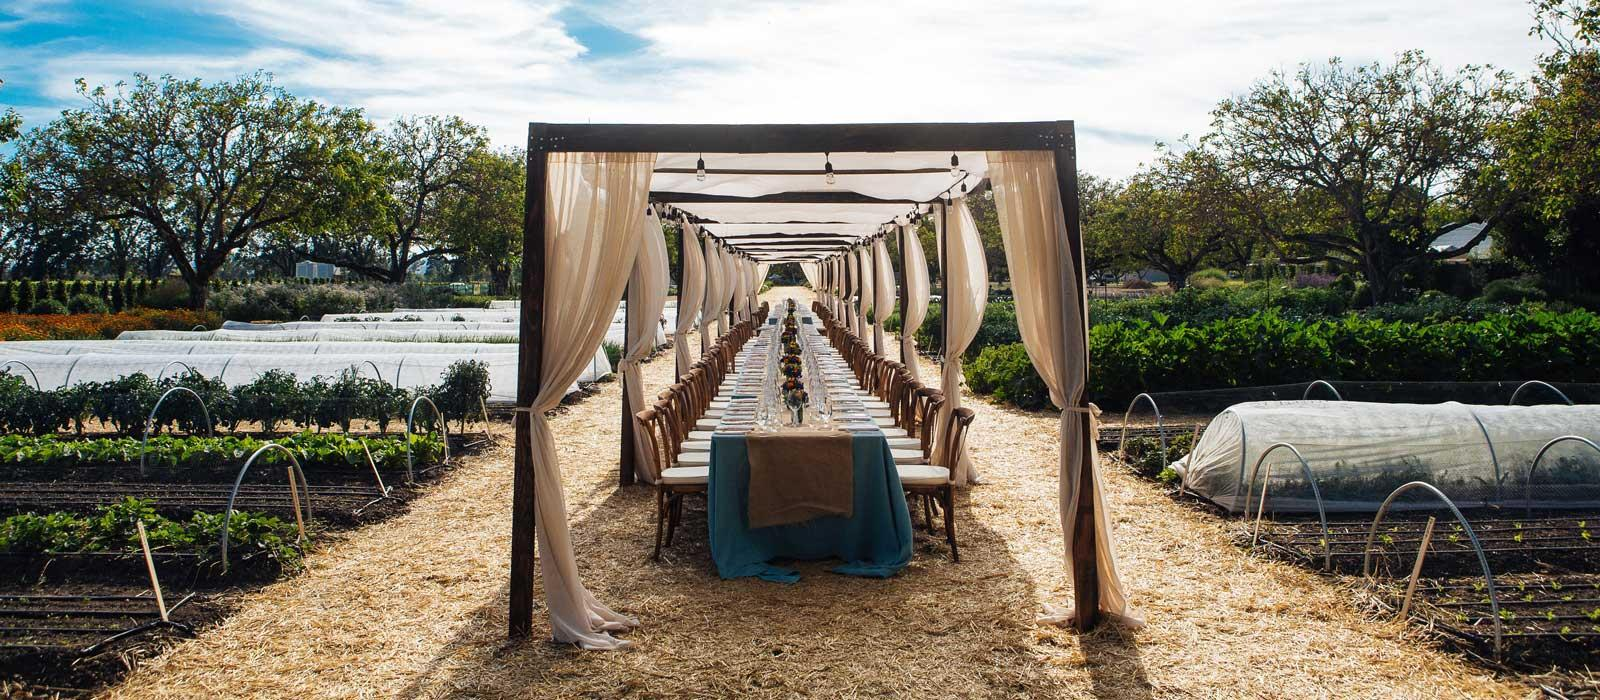 Join us once a month for our farm-to-table dinner series under the amphitheater of the Sonoma County night.